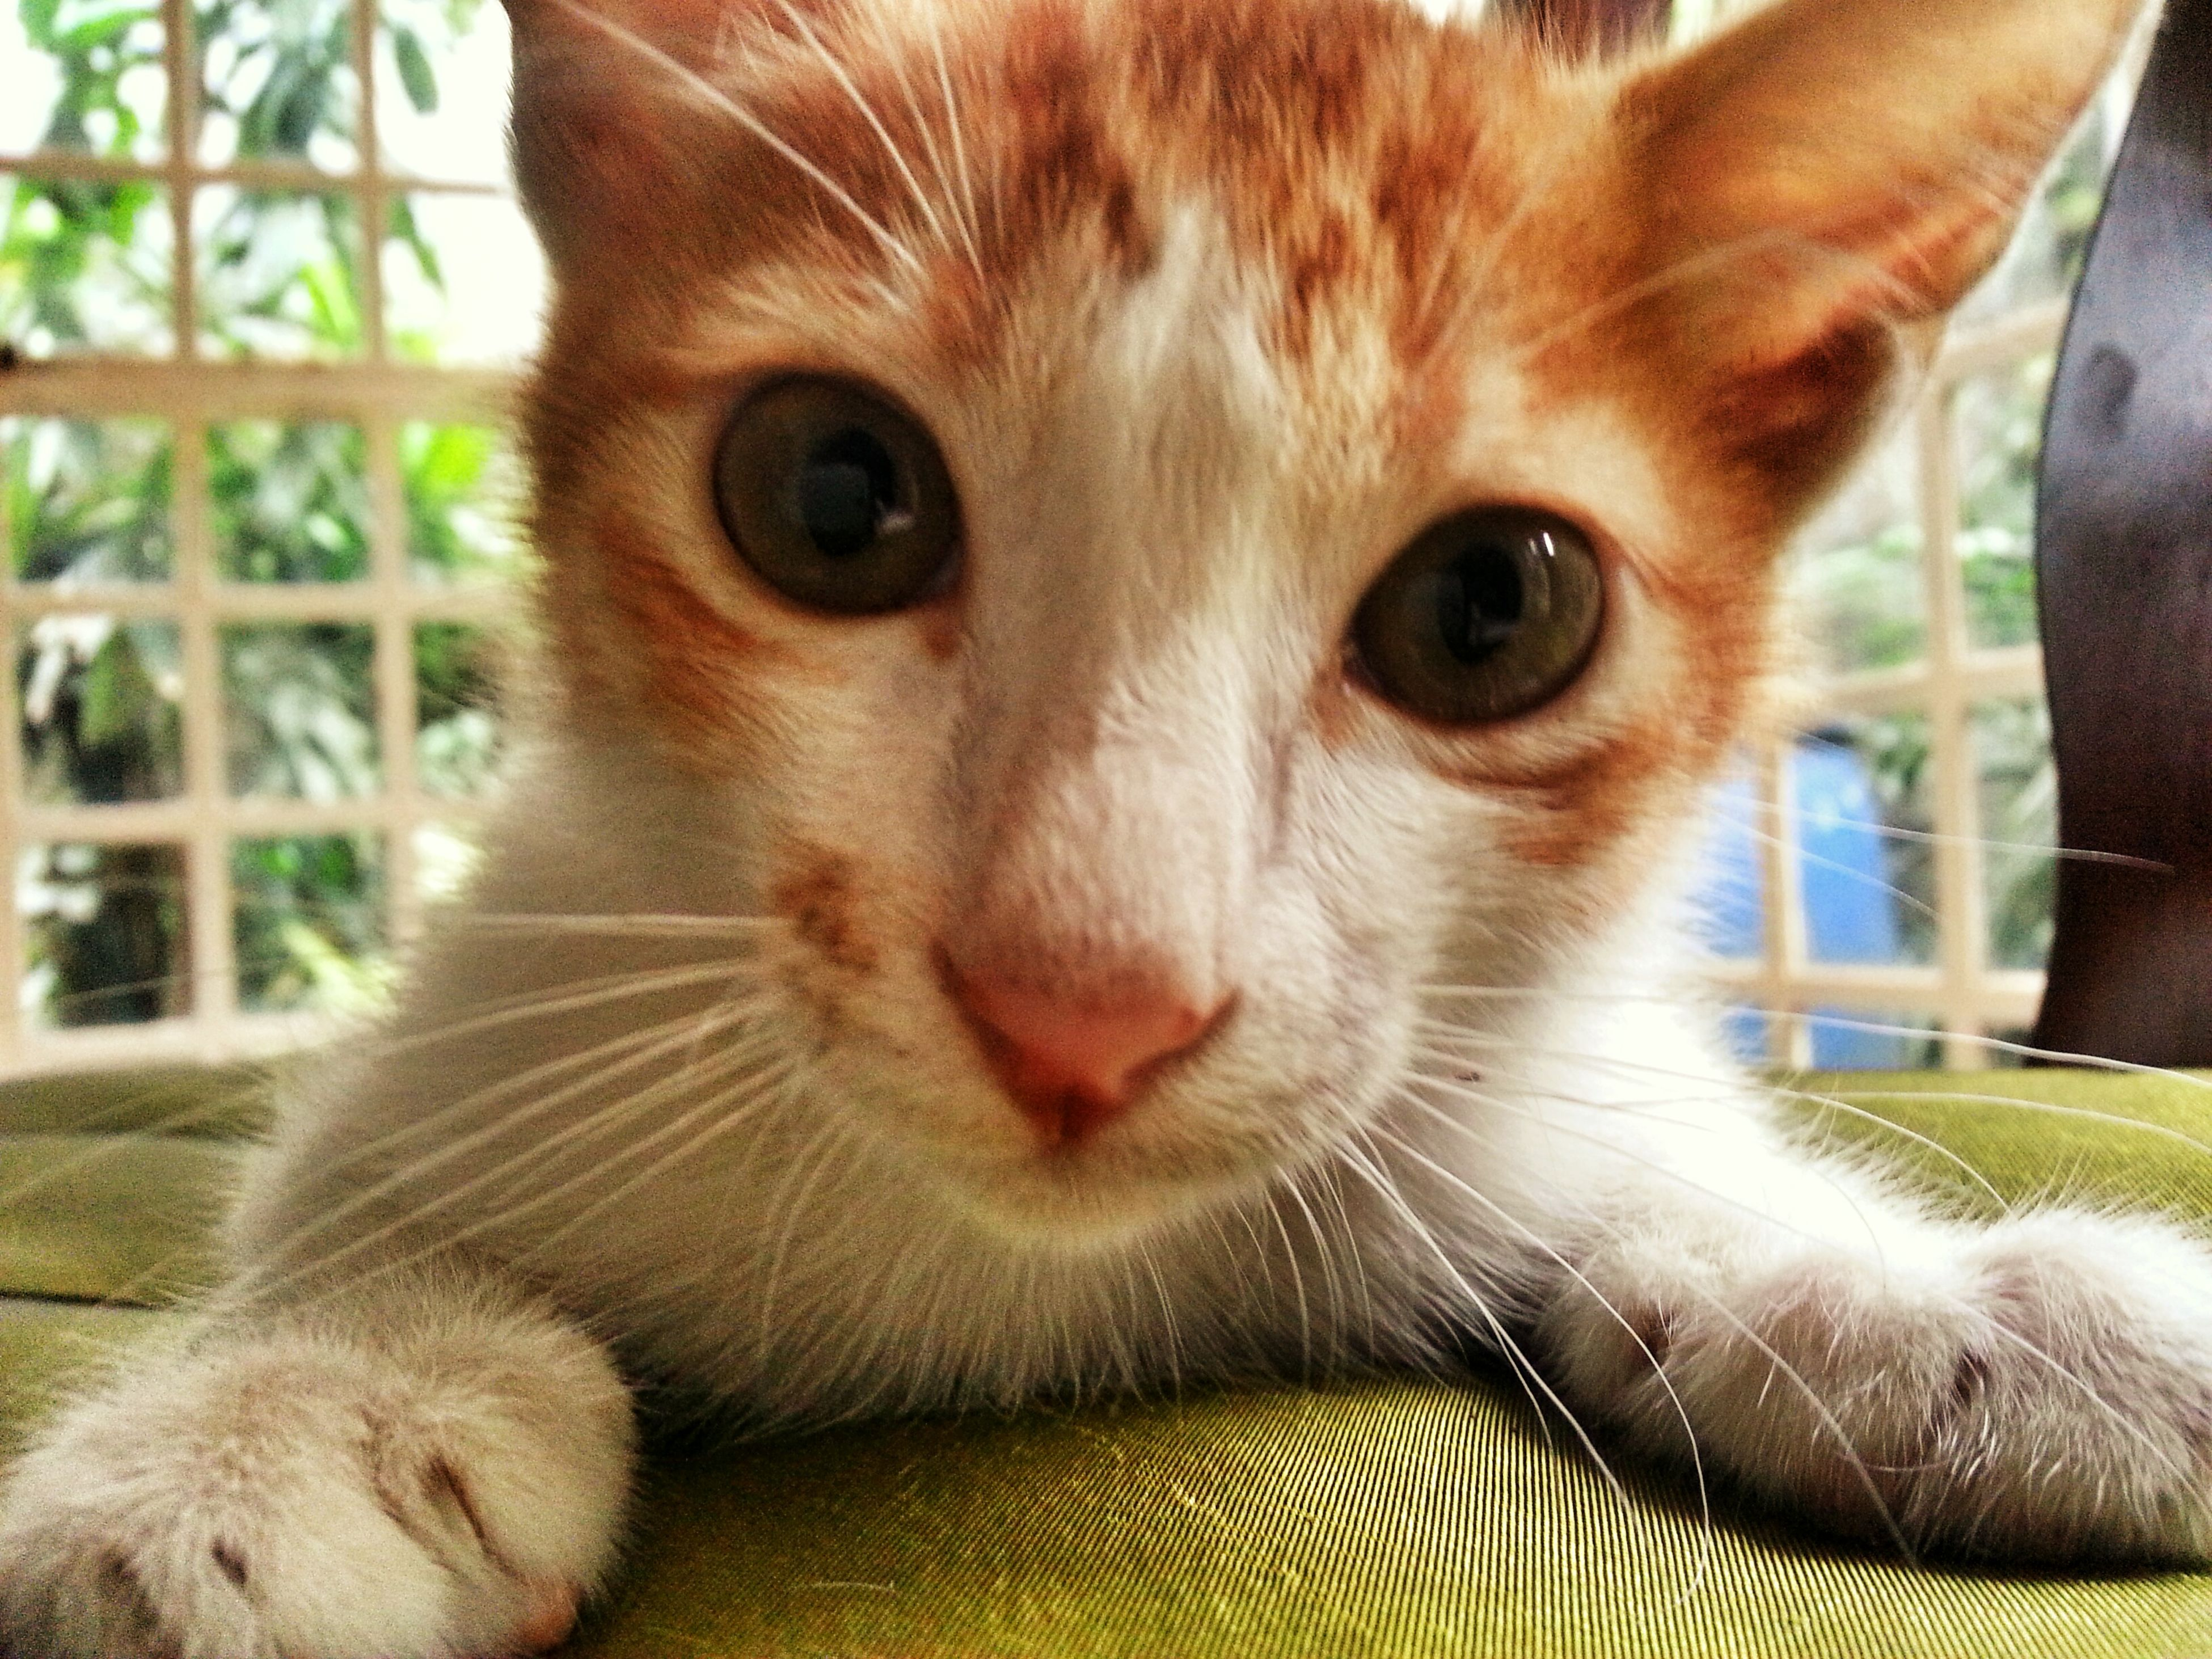 domestic cat, animal themes, one animal, mammal, cat, pets, feline, domestic animals, whisker, portrait, looking at camera, close-up, animal head, indoors, alertness, focus on foreground, animal eye, front view, staring